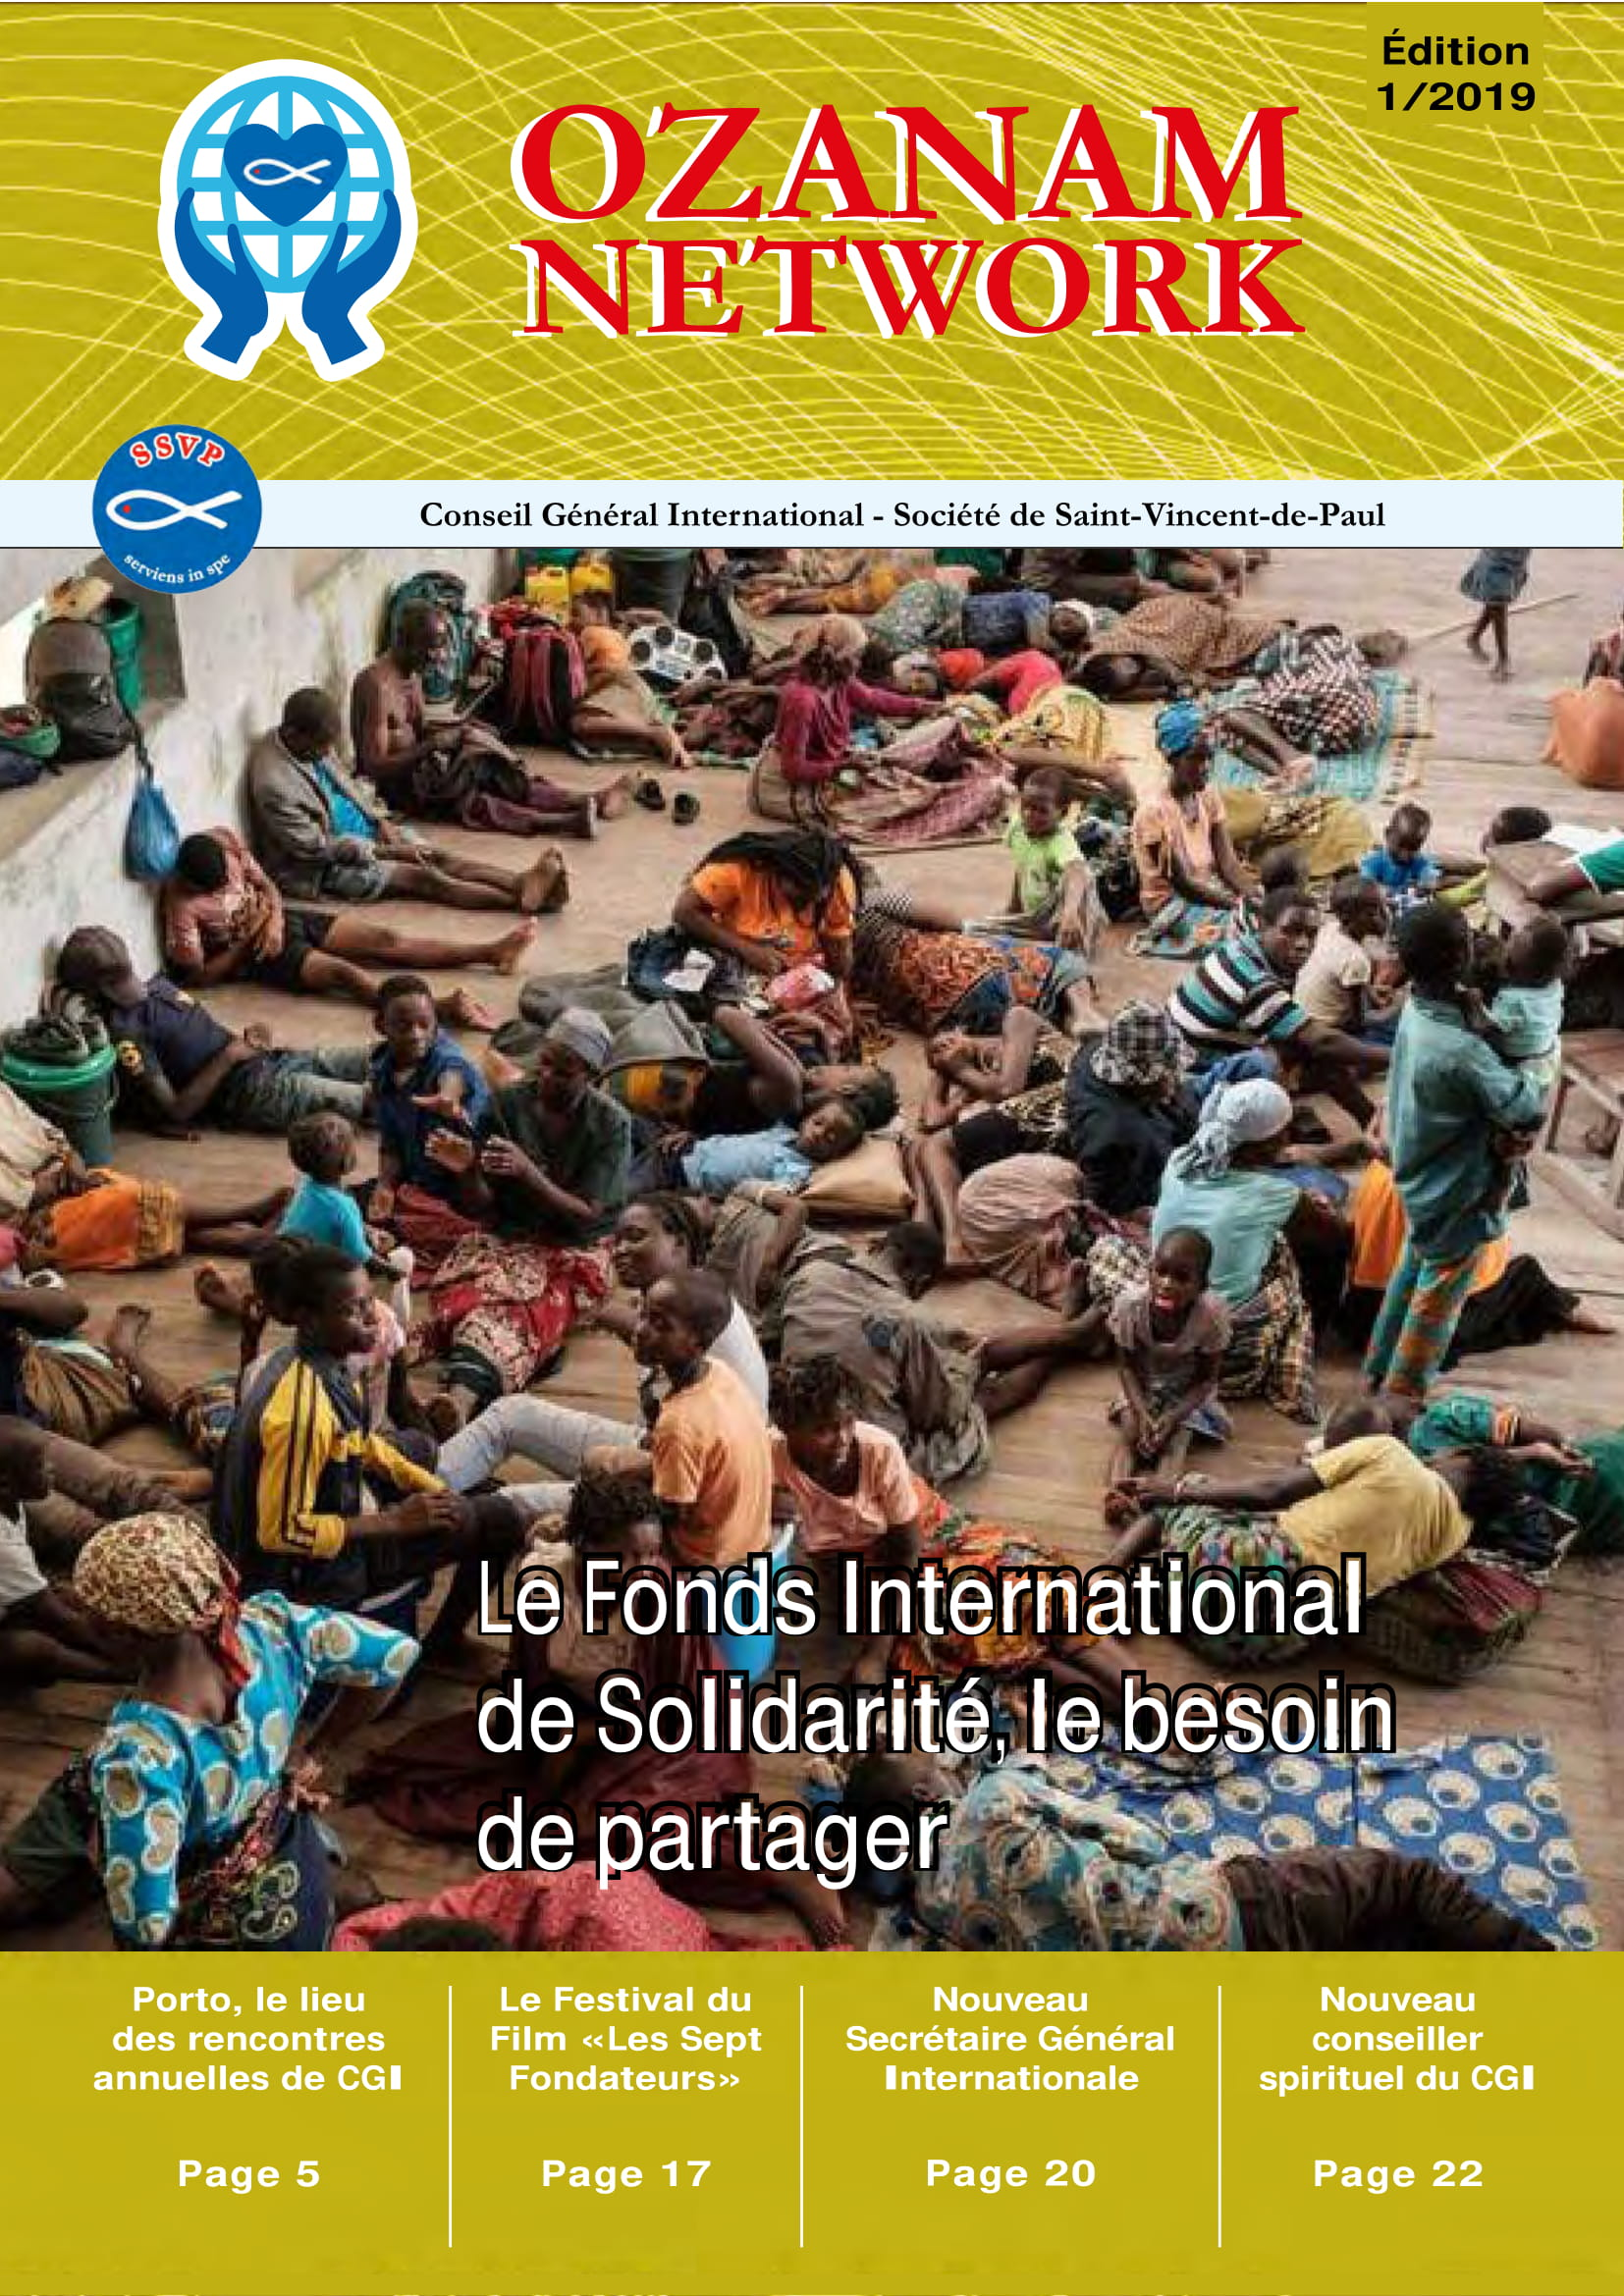 Newsletter Internationale – Ozanam Network 01/2019